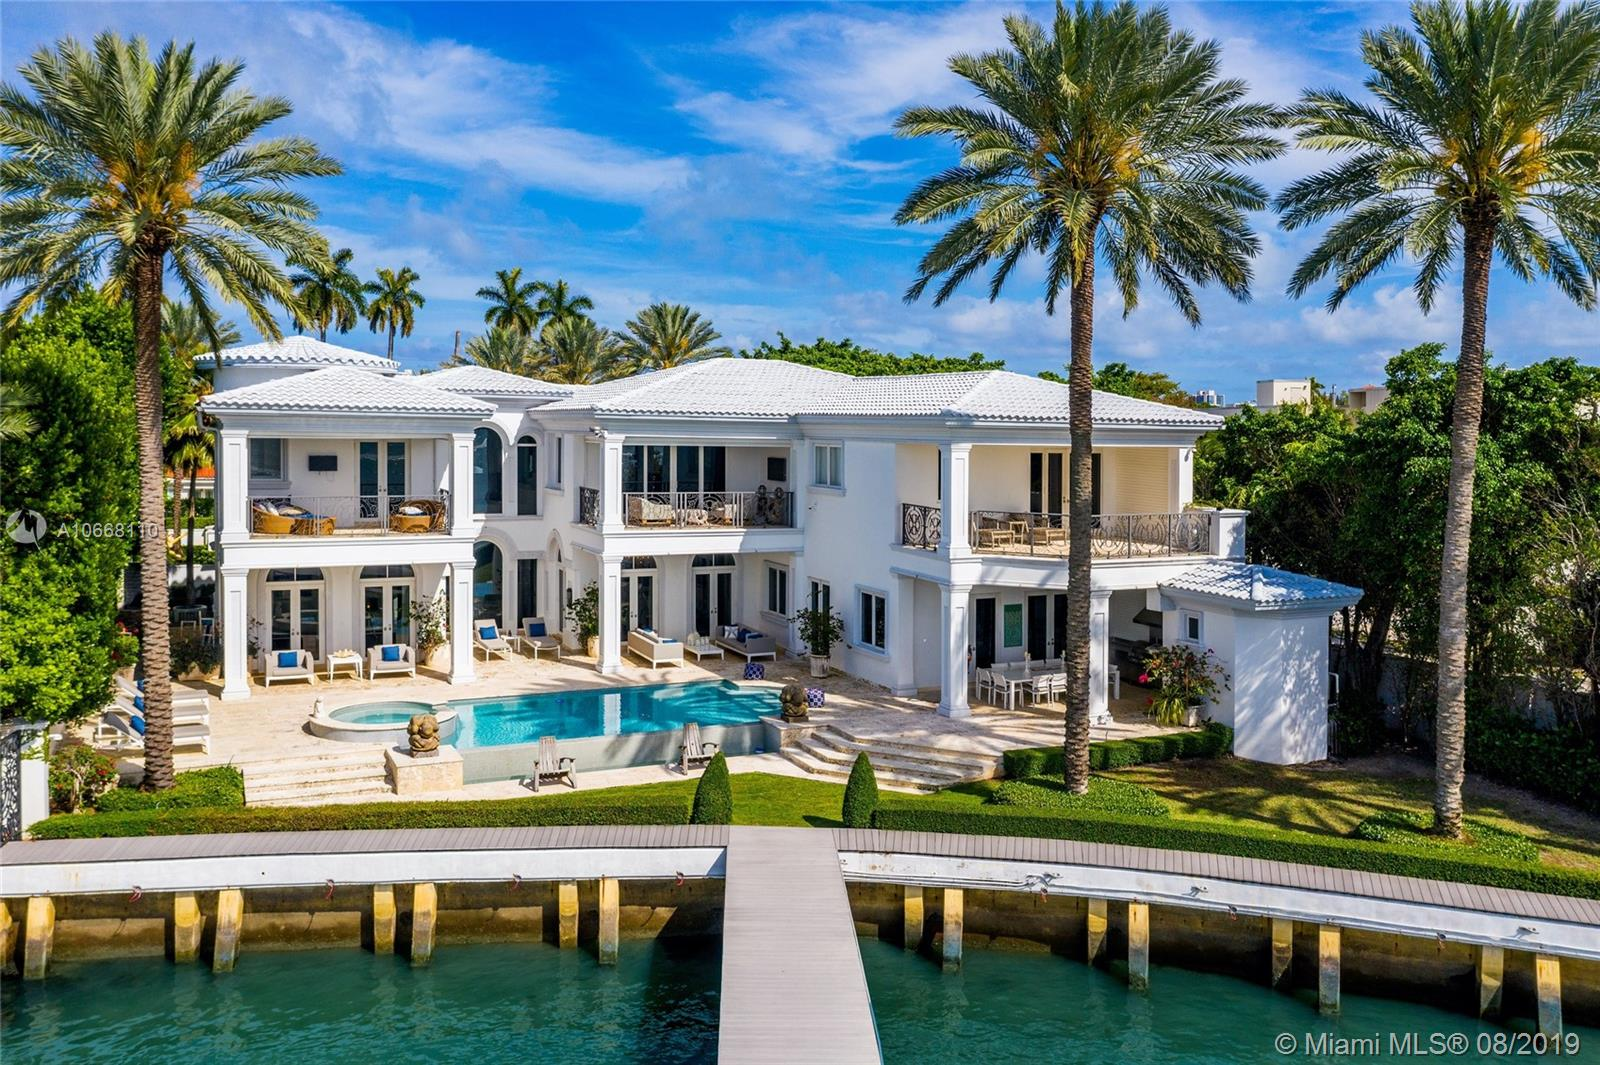 Situated On The Most Sought After Street In Miami Beach, This Completely Redesigned North Bay Road Masterpiece Offers The Quintessential Miami Lifestyle At An Unbeatable Value. Tucked Behind Private Gates On A Prime 19, 200 Sf Lot, This 6 Bd+ Office / 7.5 Ba Fully Automated Smart Home Boasts 10, 070 Total Sf Of Bespoke Interiors W/ 133 Ft Of Open Bay & Downtown Sunset Views. Enjoy Large Sun Filled Rooms W/ High Ceilings & Open Bay Views Throughout The Meticulously Designed Layout Which Is Ideal For Family Living Or Lavish Entertainment. The Backyard Is An Entertainers Paradise As It Features Covered Loggias, Summer Kitchen & Bbq, Infinity Edge Pool W/ Spa, Cabana Bath, Downtown Sunset Views & 133 Feet Of Prime Open Bay Which Can Accommodate An Oversized Yacht. Priced Below Replacement Cost